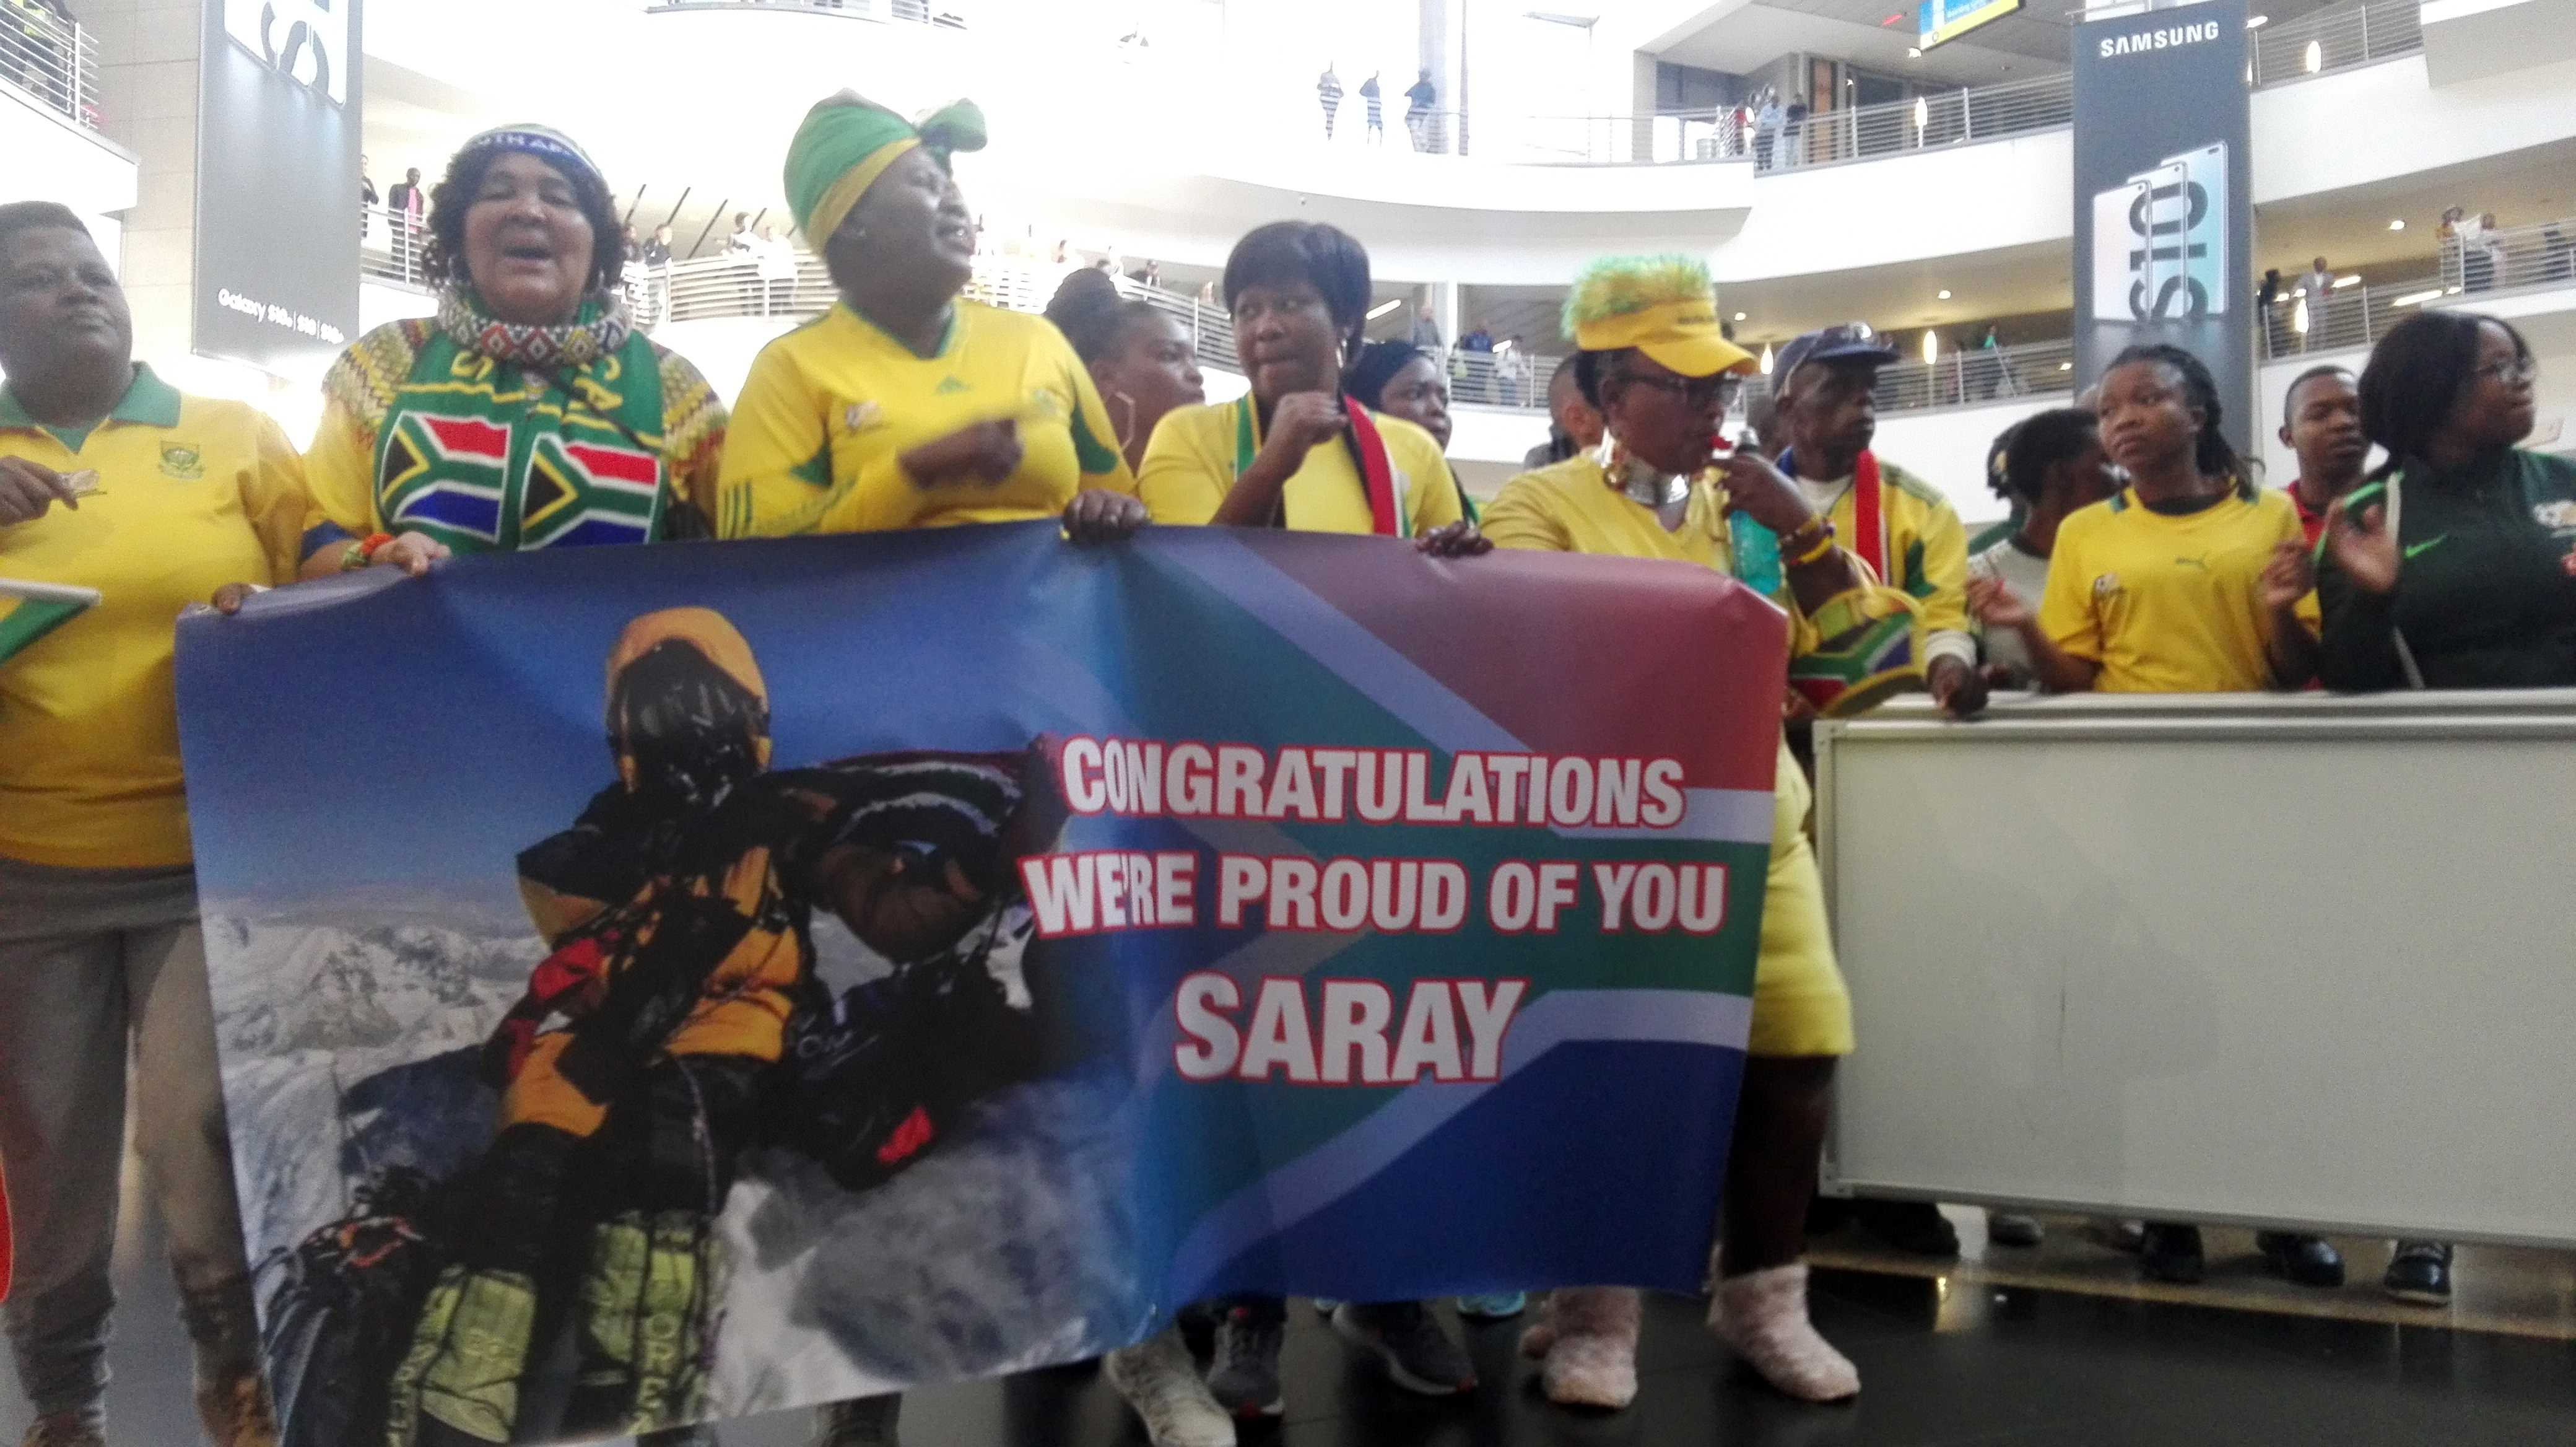 After making history, mountaineer Saray Khumalo receive